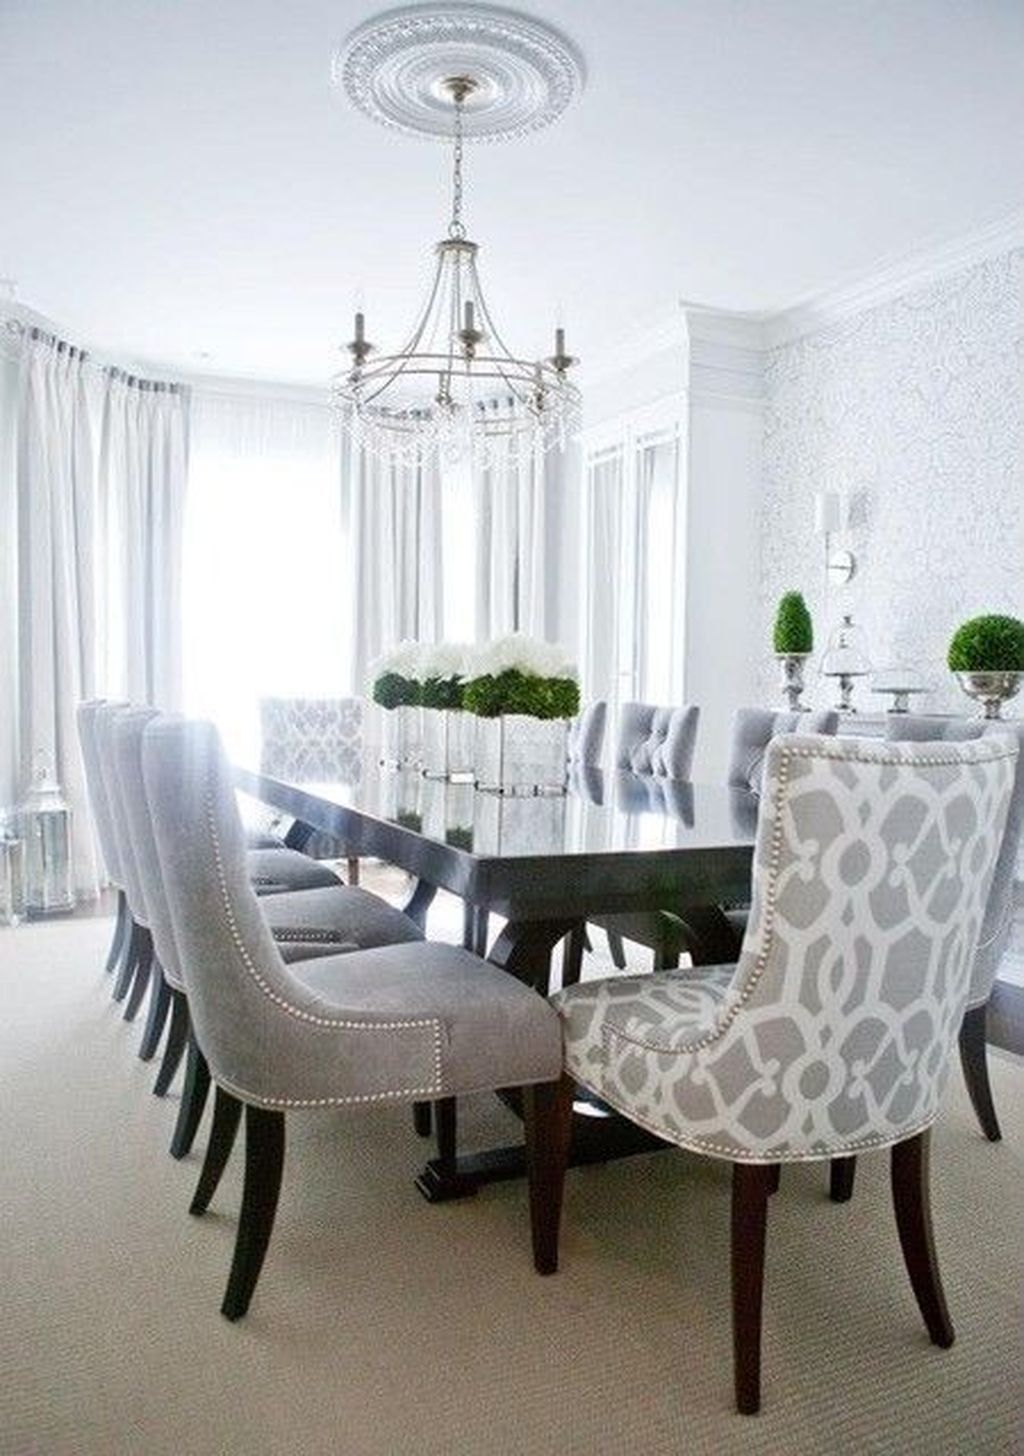 Fabulous Contemporary Dining Room Decorating Ideas 26